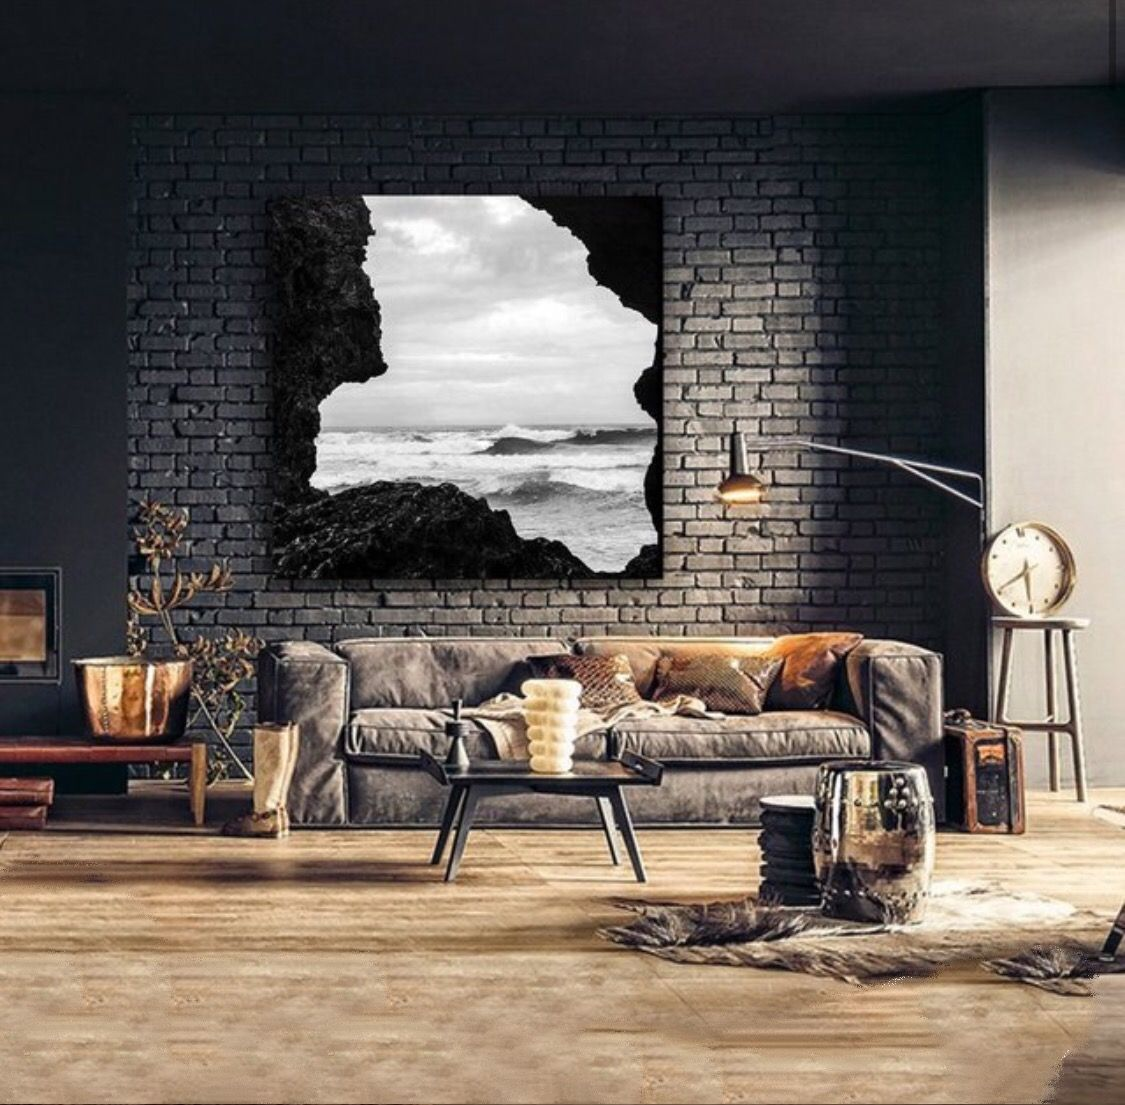 Endless waves canvas print. Integrate this work of art into your favorite décor. Gallery…  #lifestyle #luxurylife #luxurylifestyle #onlineshopping #shopping #shoppingonline #giftideas #giftforher #canvas #print #printsforsale #painting #paintings #pinterest